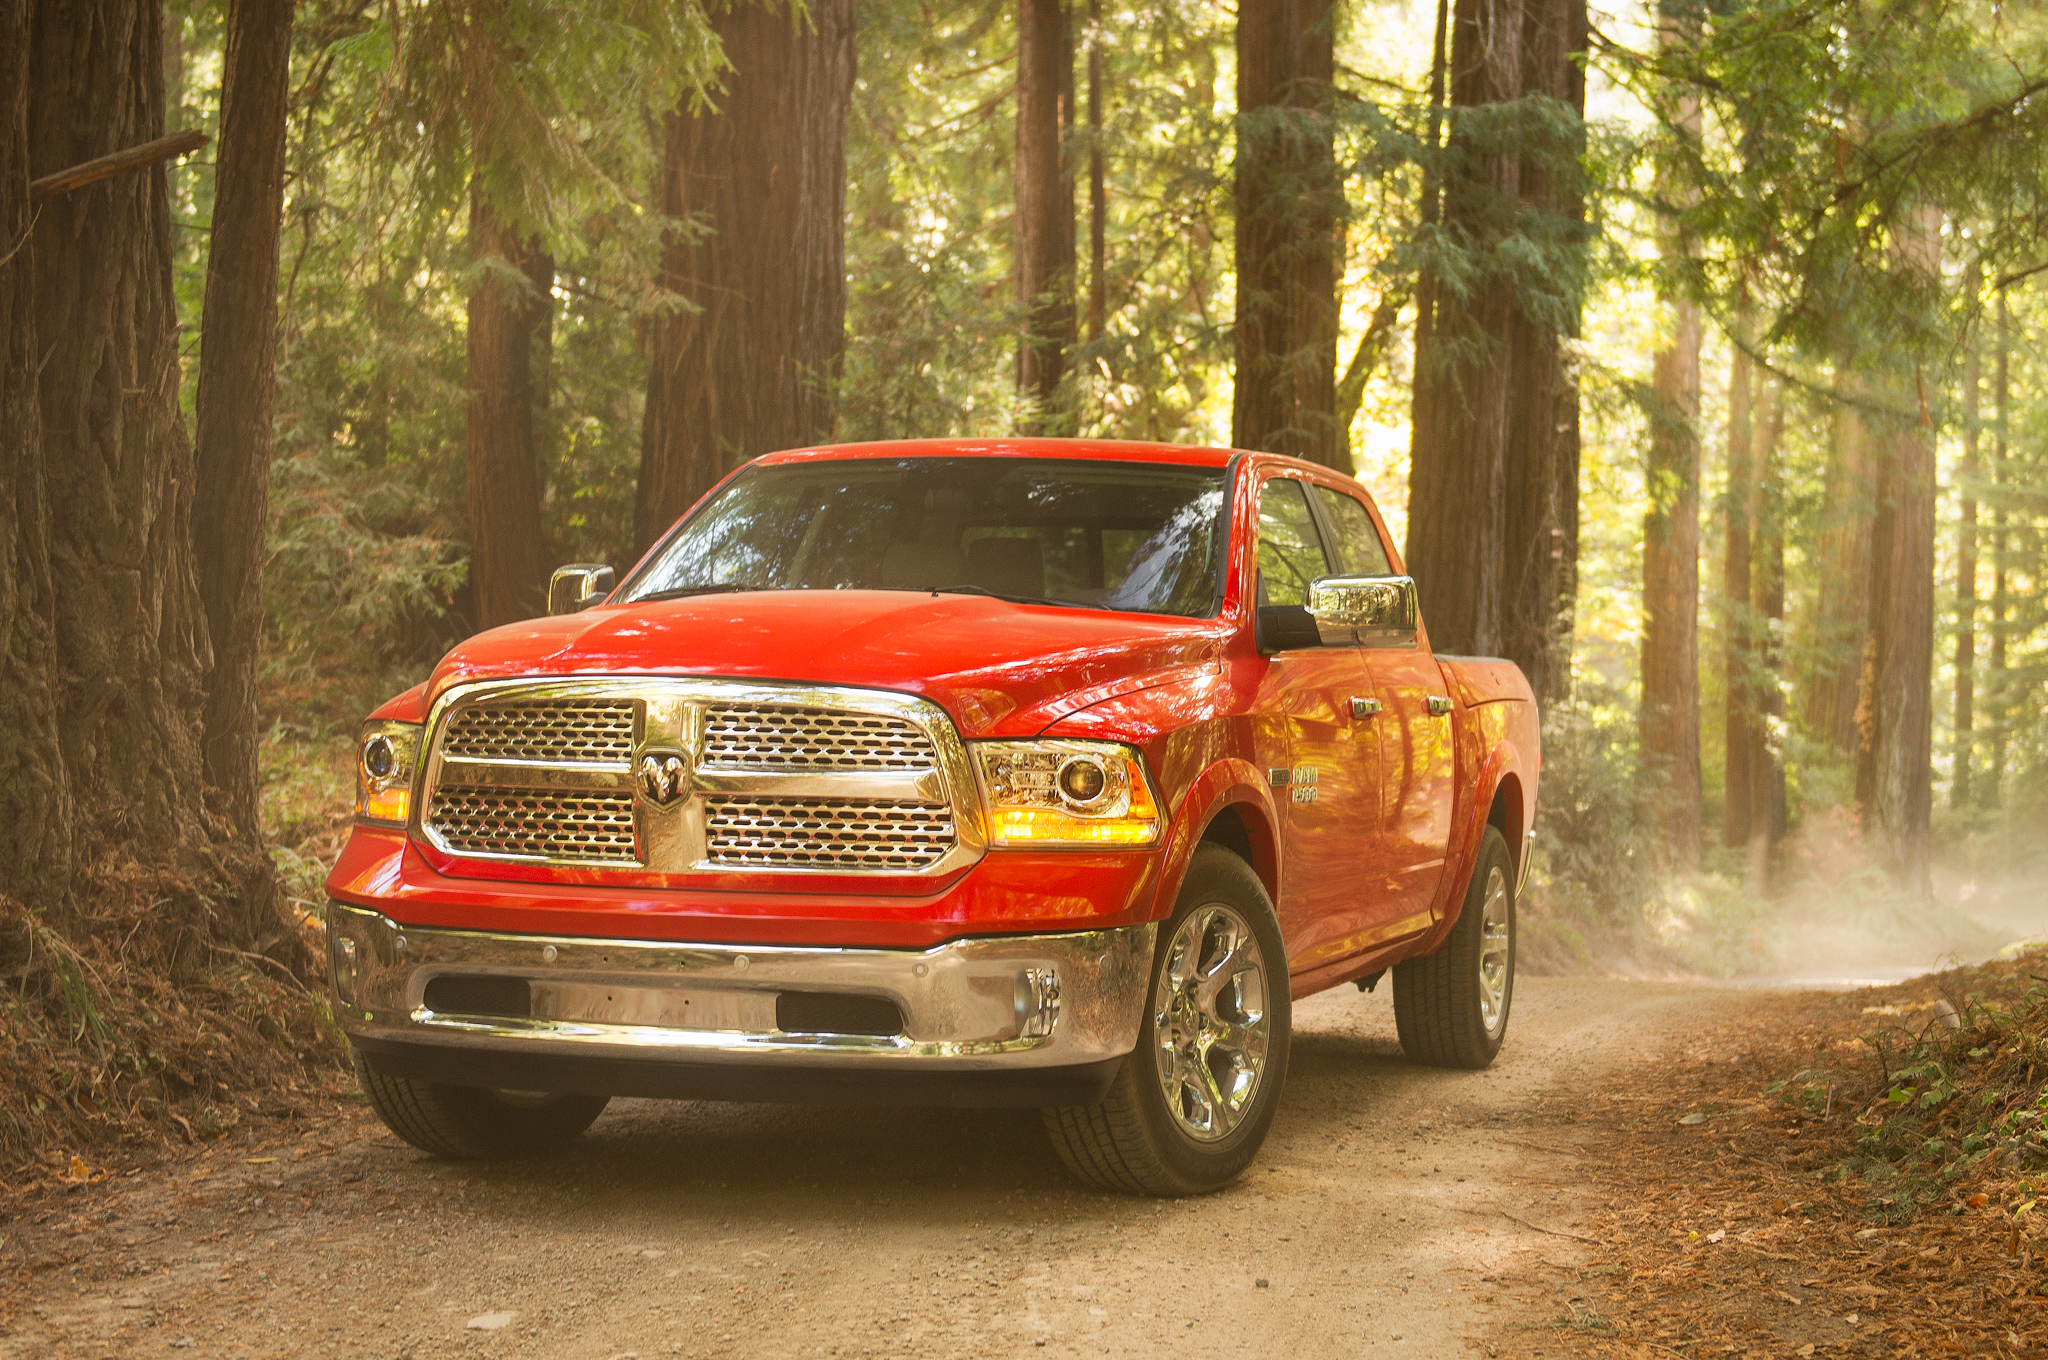 Ram 1500 is Our 2014 Truck of the Year – Do You Agree With Our Choice?